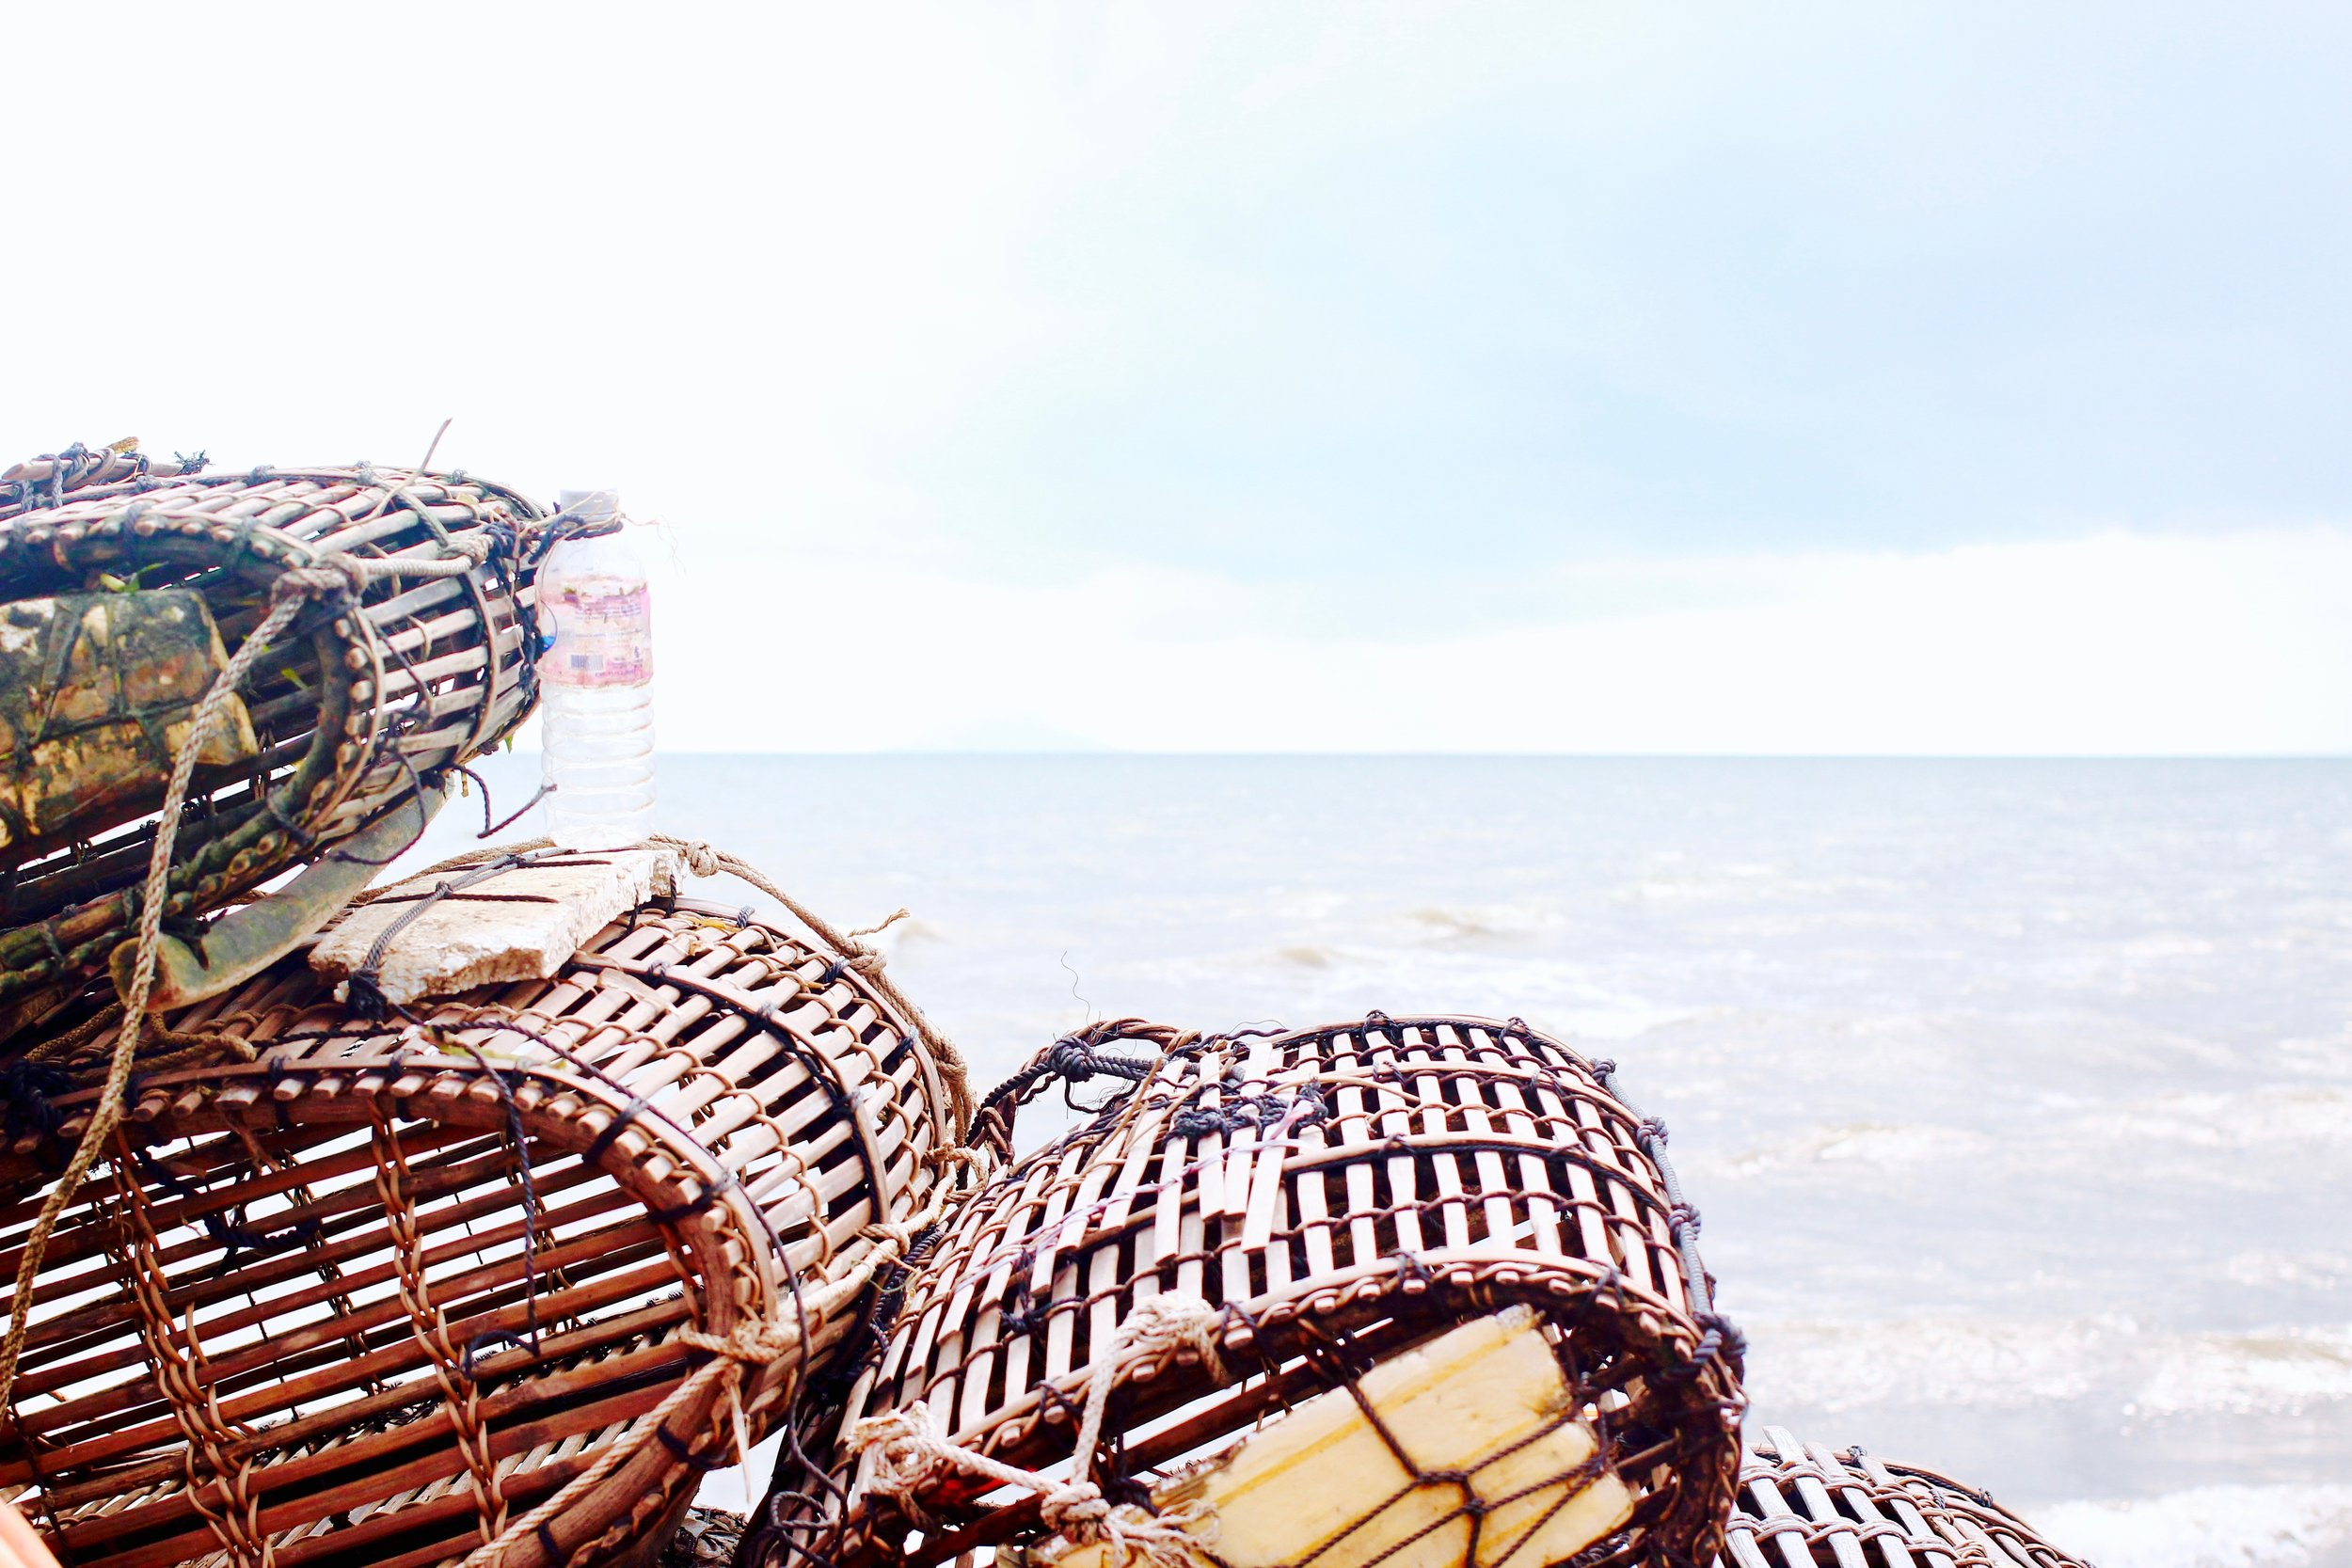 Baskets that collect all the sea creatures